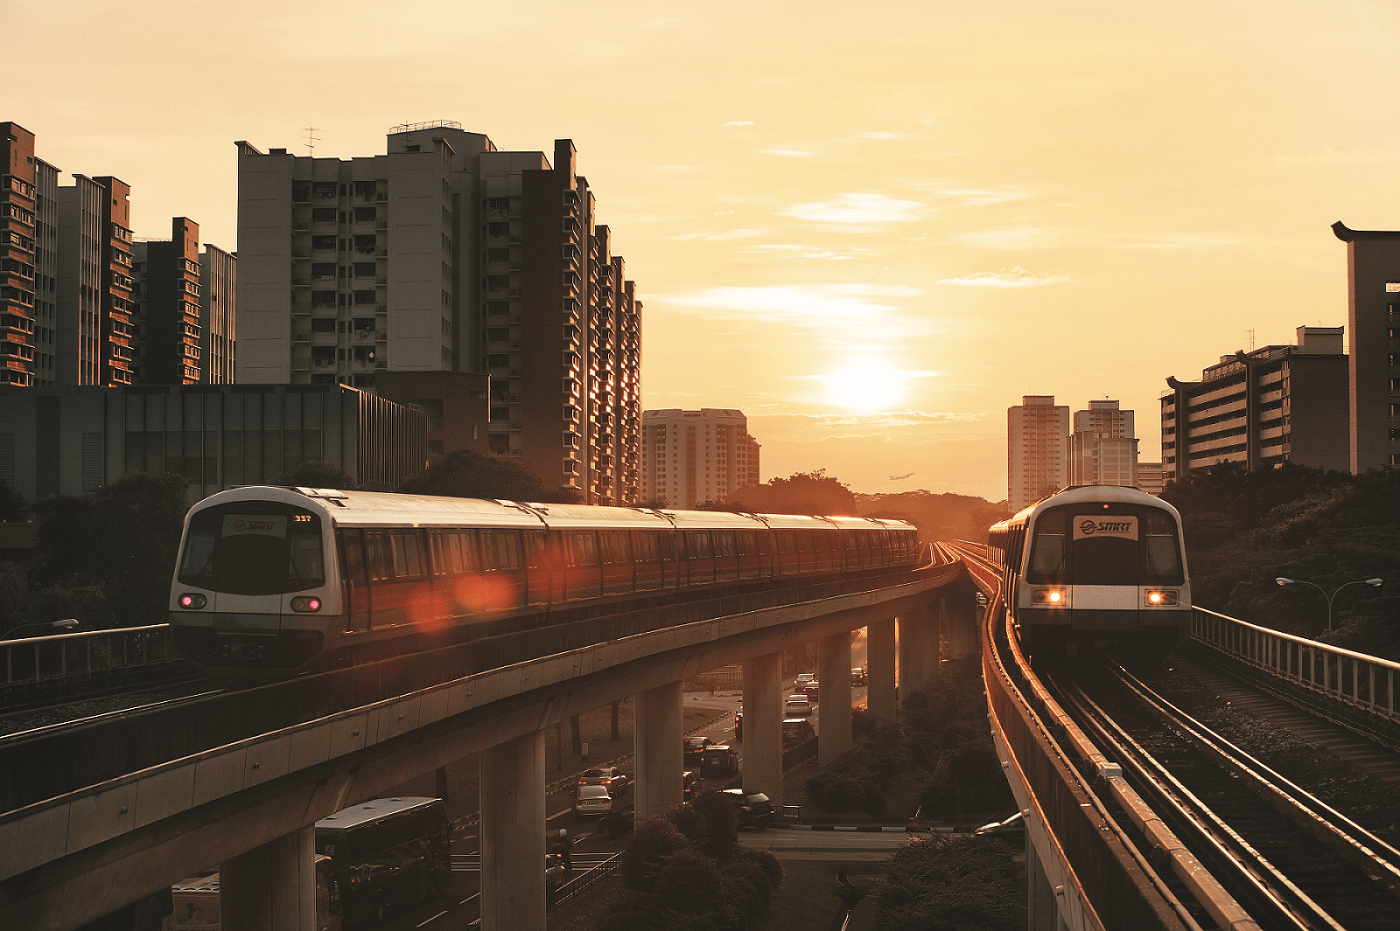 Times When Our MRT System Actually Got It Right